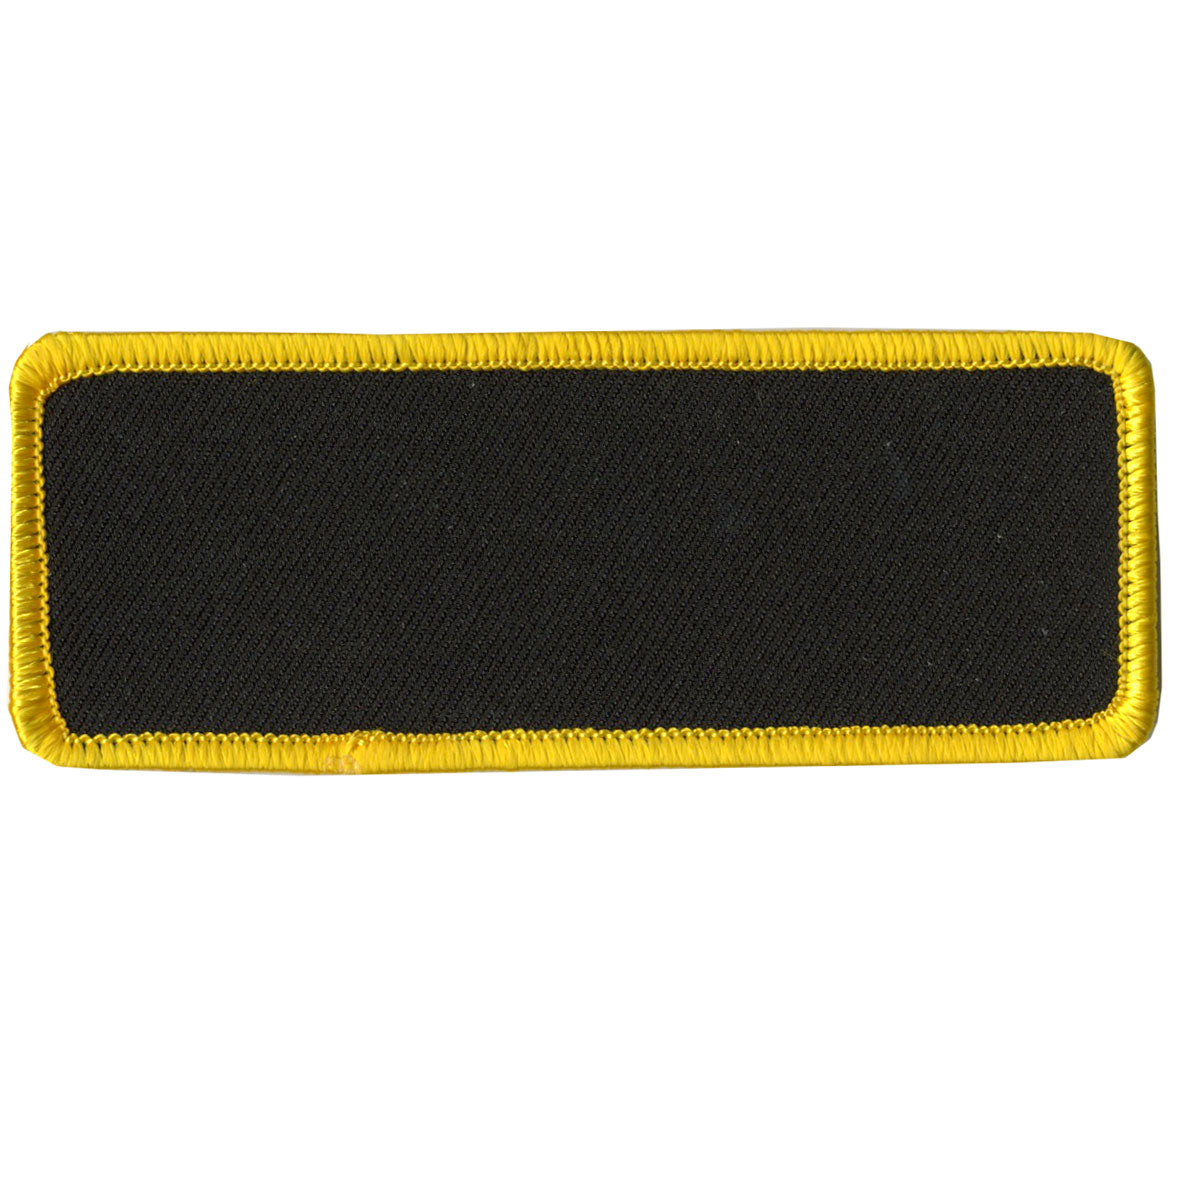 "Hot Leathers Blank w/ Yellow Trim 4"" x 1.5"" Patch"